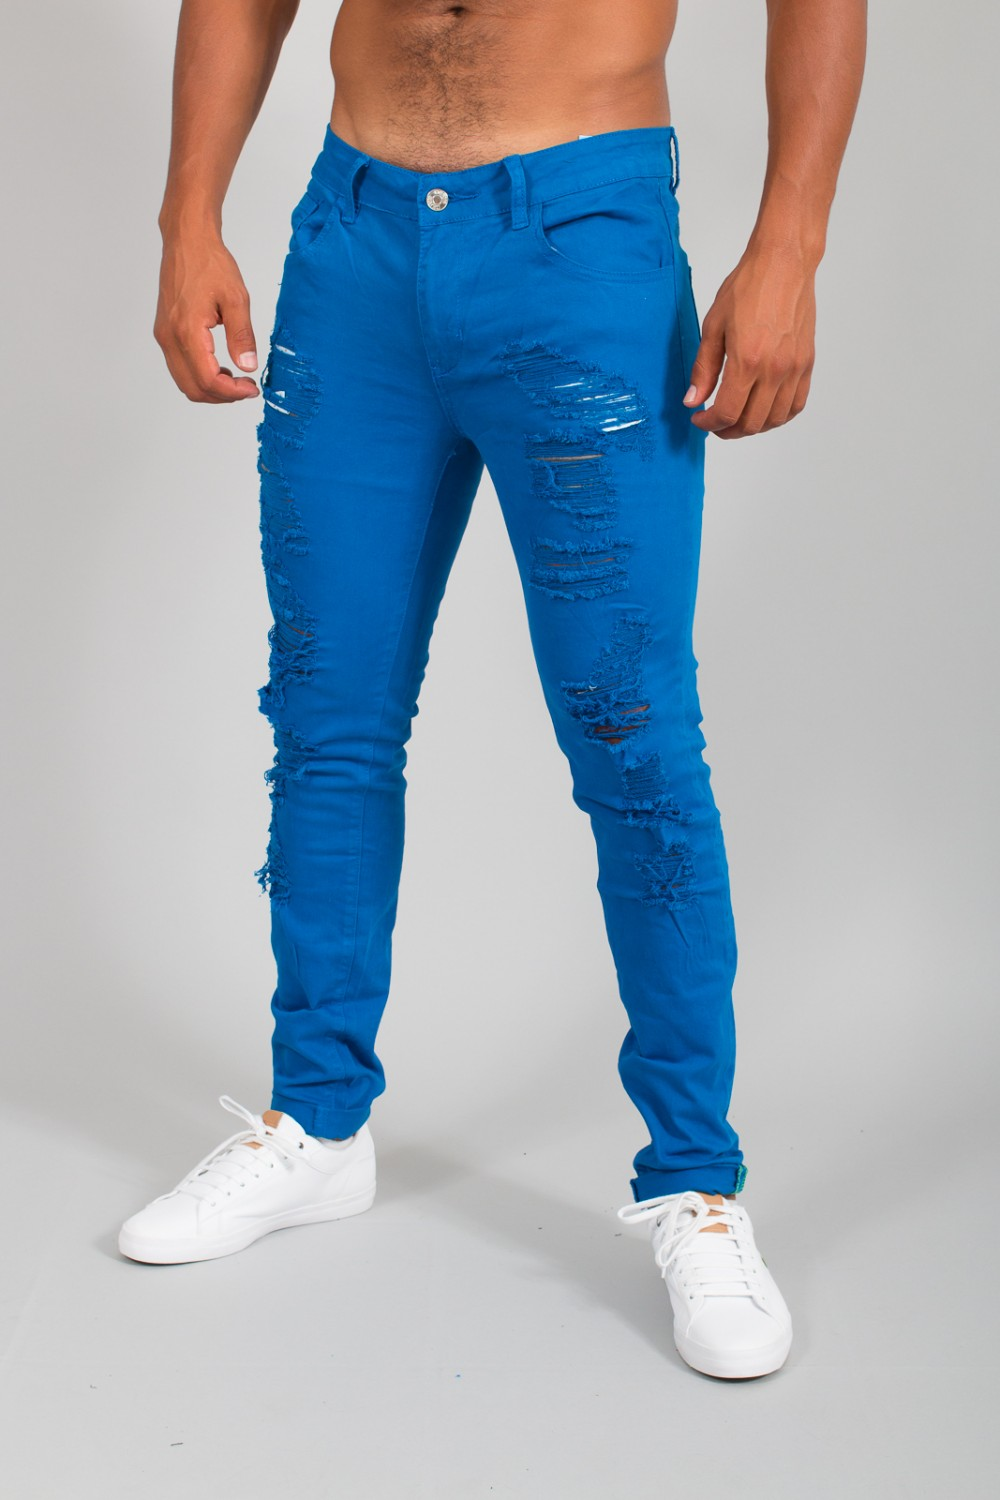 Destroy Hombre Electric Blue Slim Vaqueros 581 nk8XwOP0